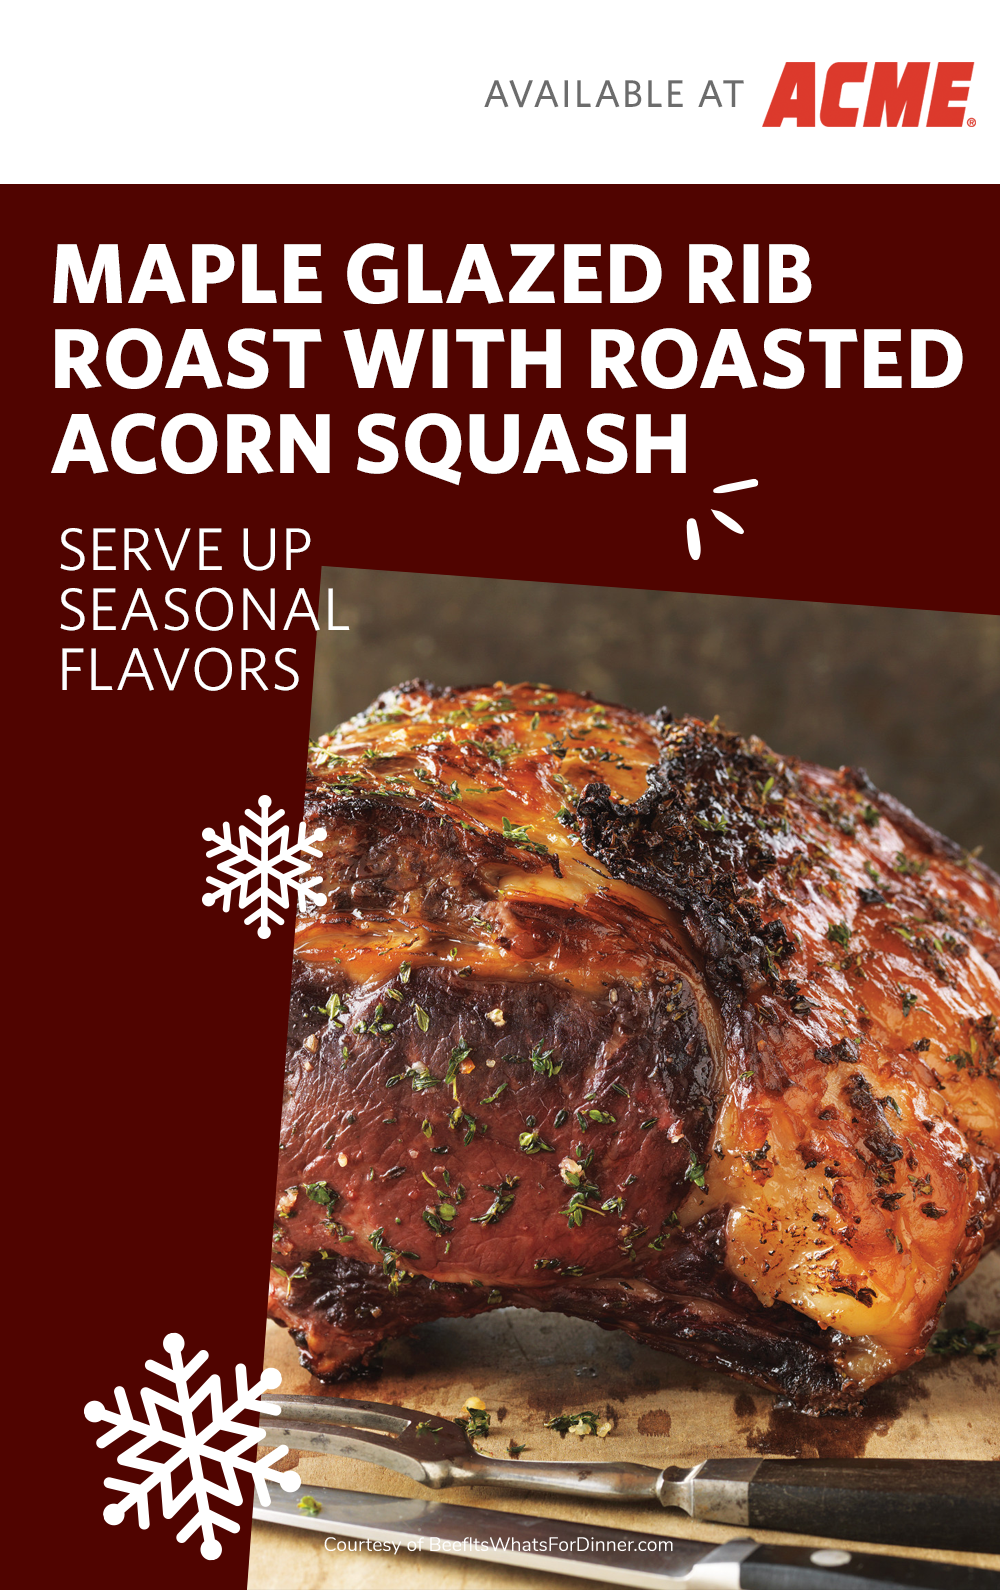 Serve Up Seasonal Flavors With This Maple Glazed Rib Roast With